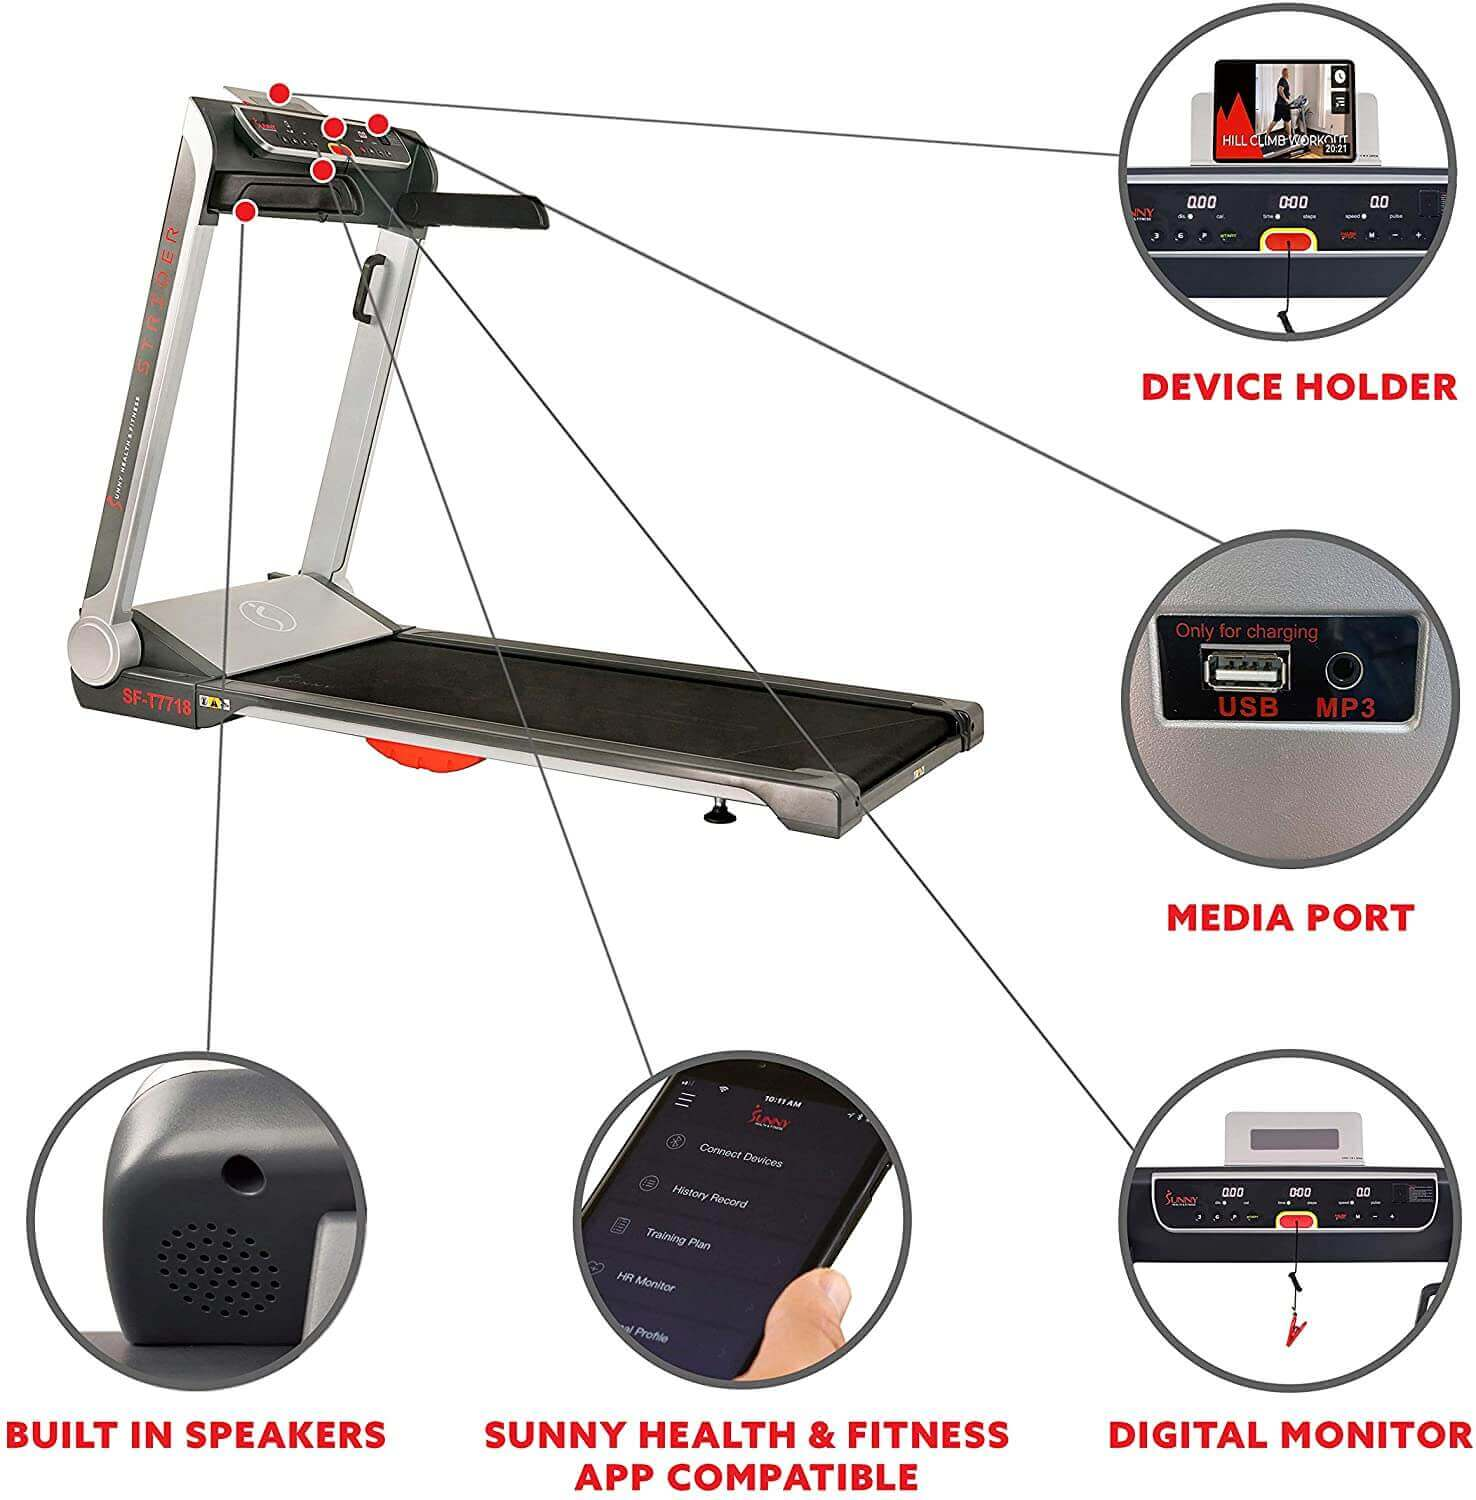 Sunny Health and Fitness Electric Slim Folding Running Treadmill functionality